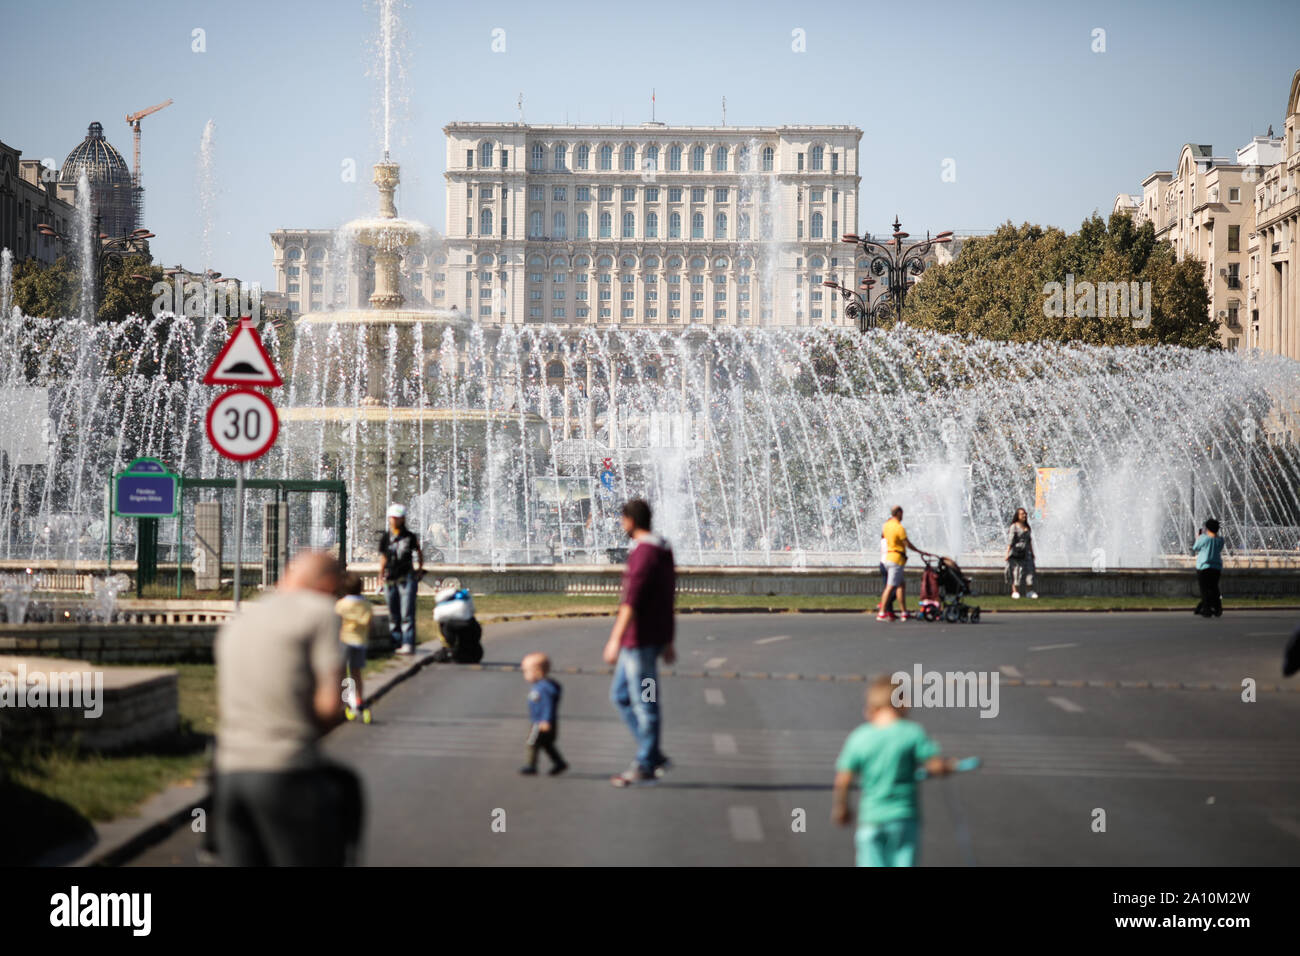 Bucharest, Romania - September 22, 2019: People walk on an empty boulevard with the Palace of Parliament on the background in downtown Bucharest. Stock Photo